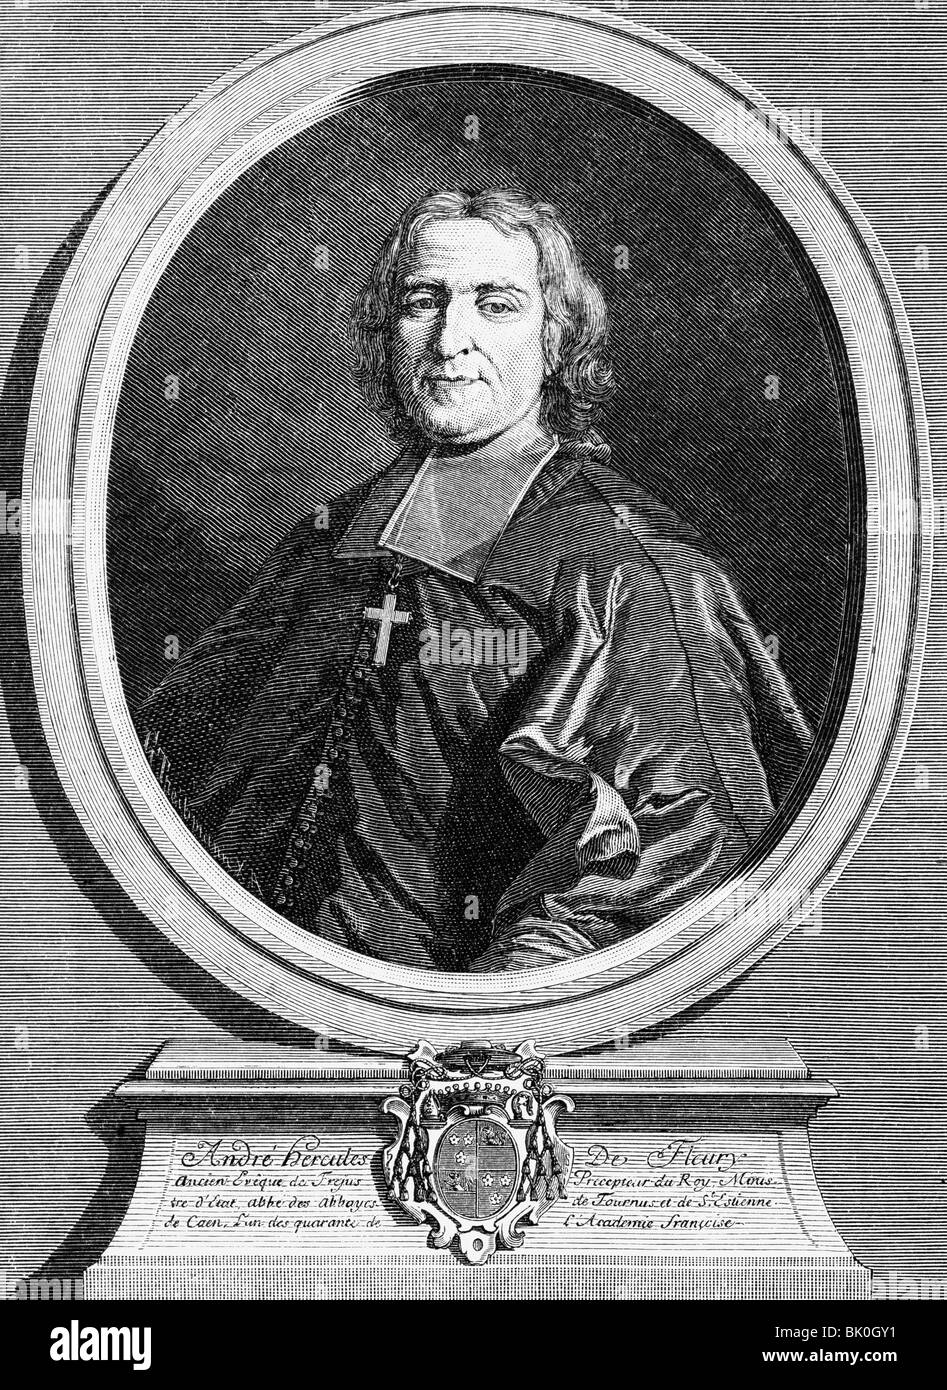 Fleury, Andre-Hercule de, 22.6.1653 - 29.1.1743, French clergyman and politician, First Minister 11.7.1726 - 29.1.1743, - Stock Image